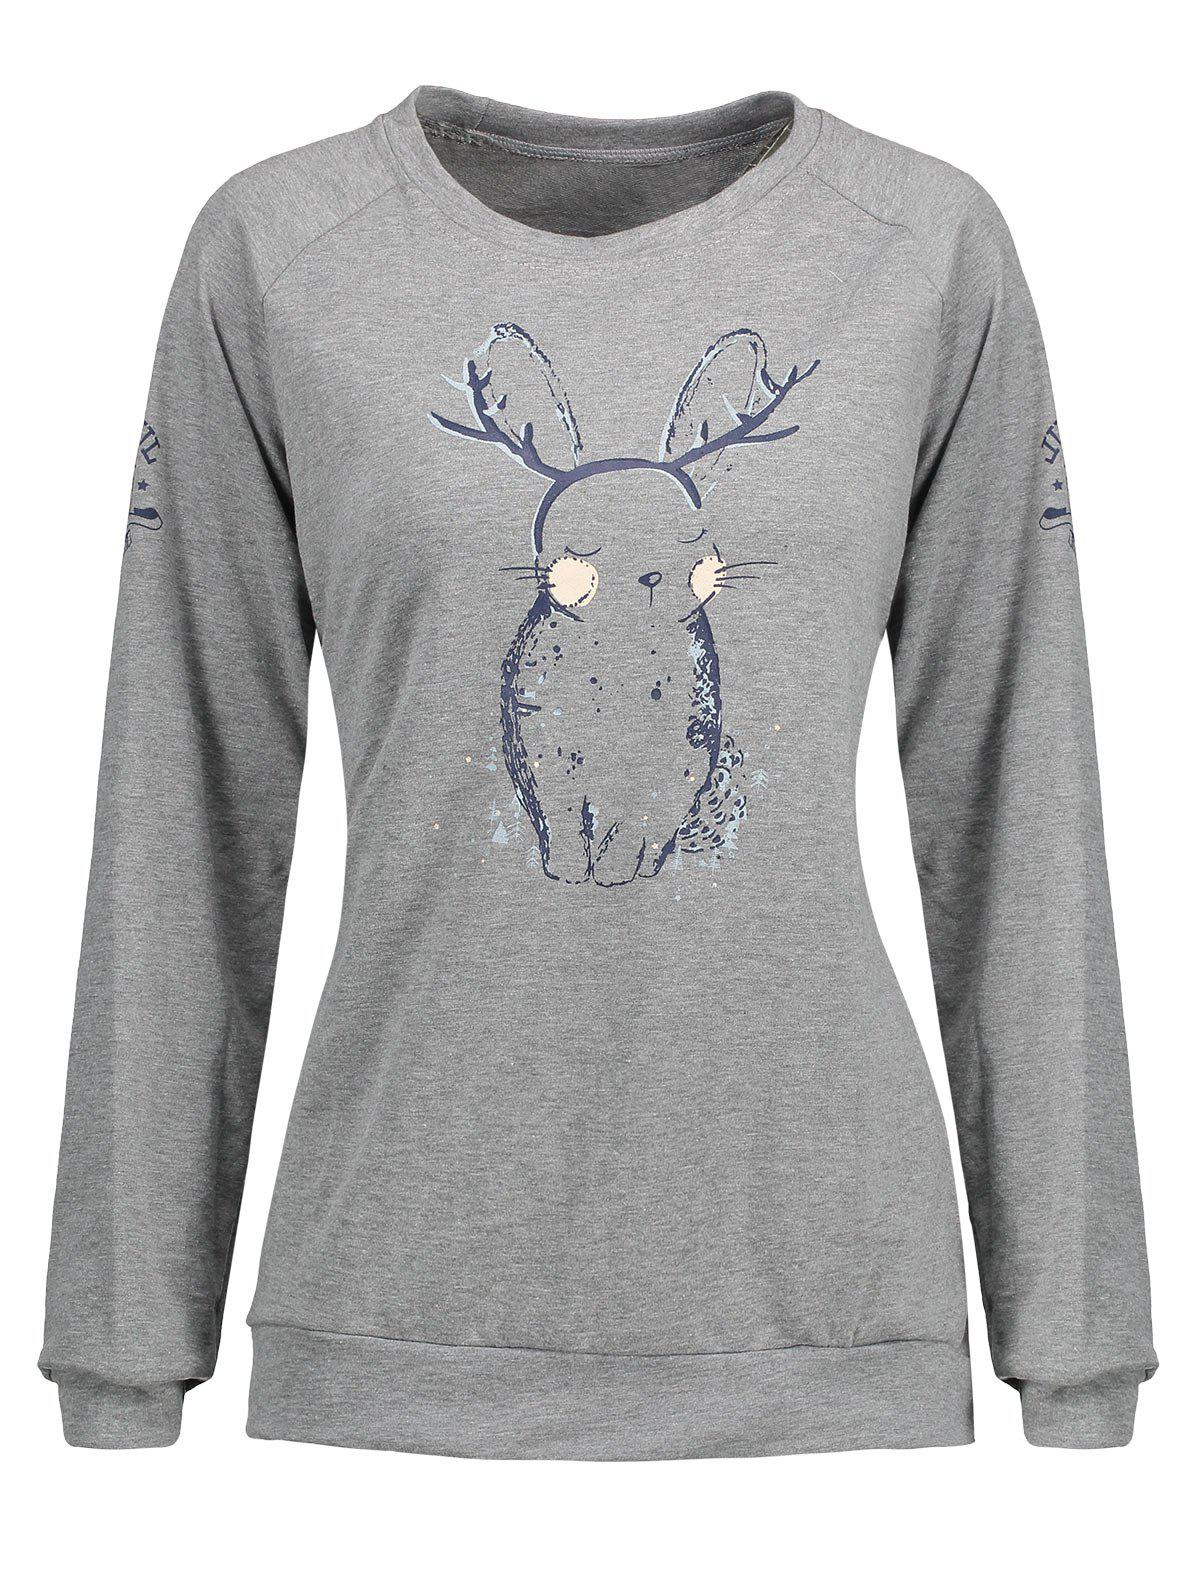 Plus Size Bunny Print Sweatshirt - GRAY 5XL